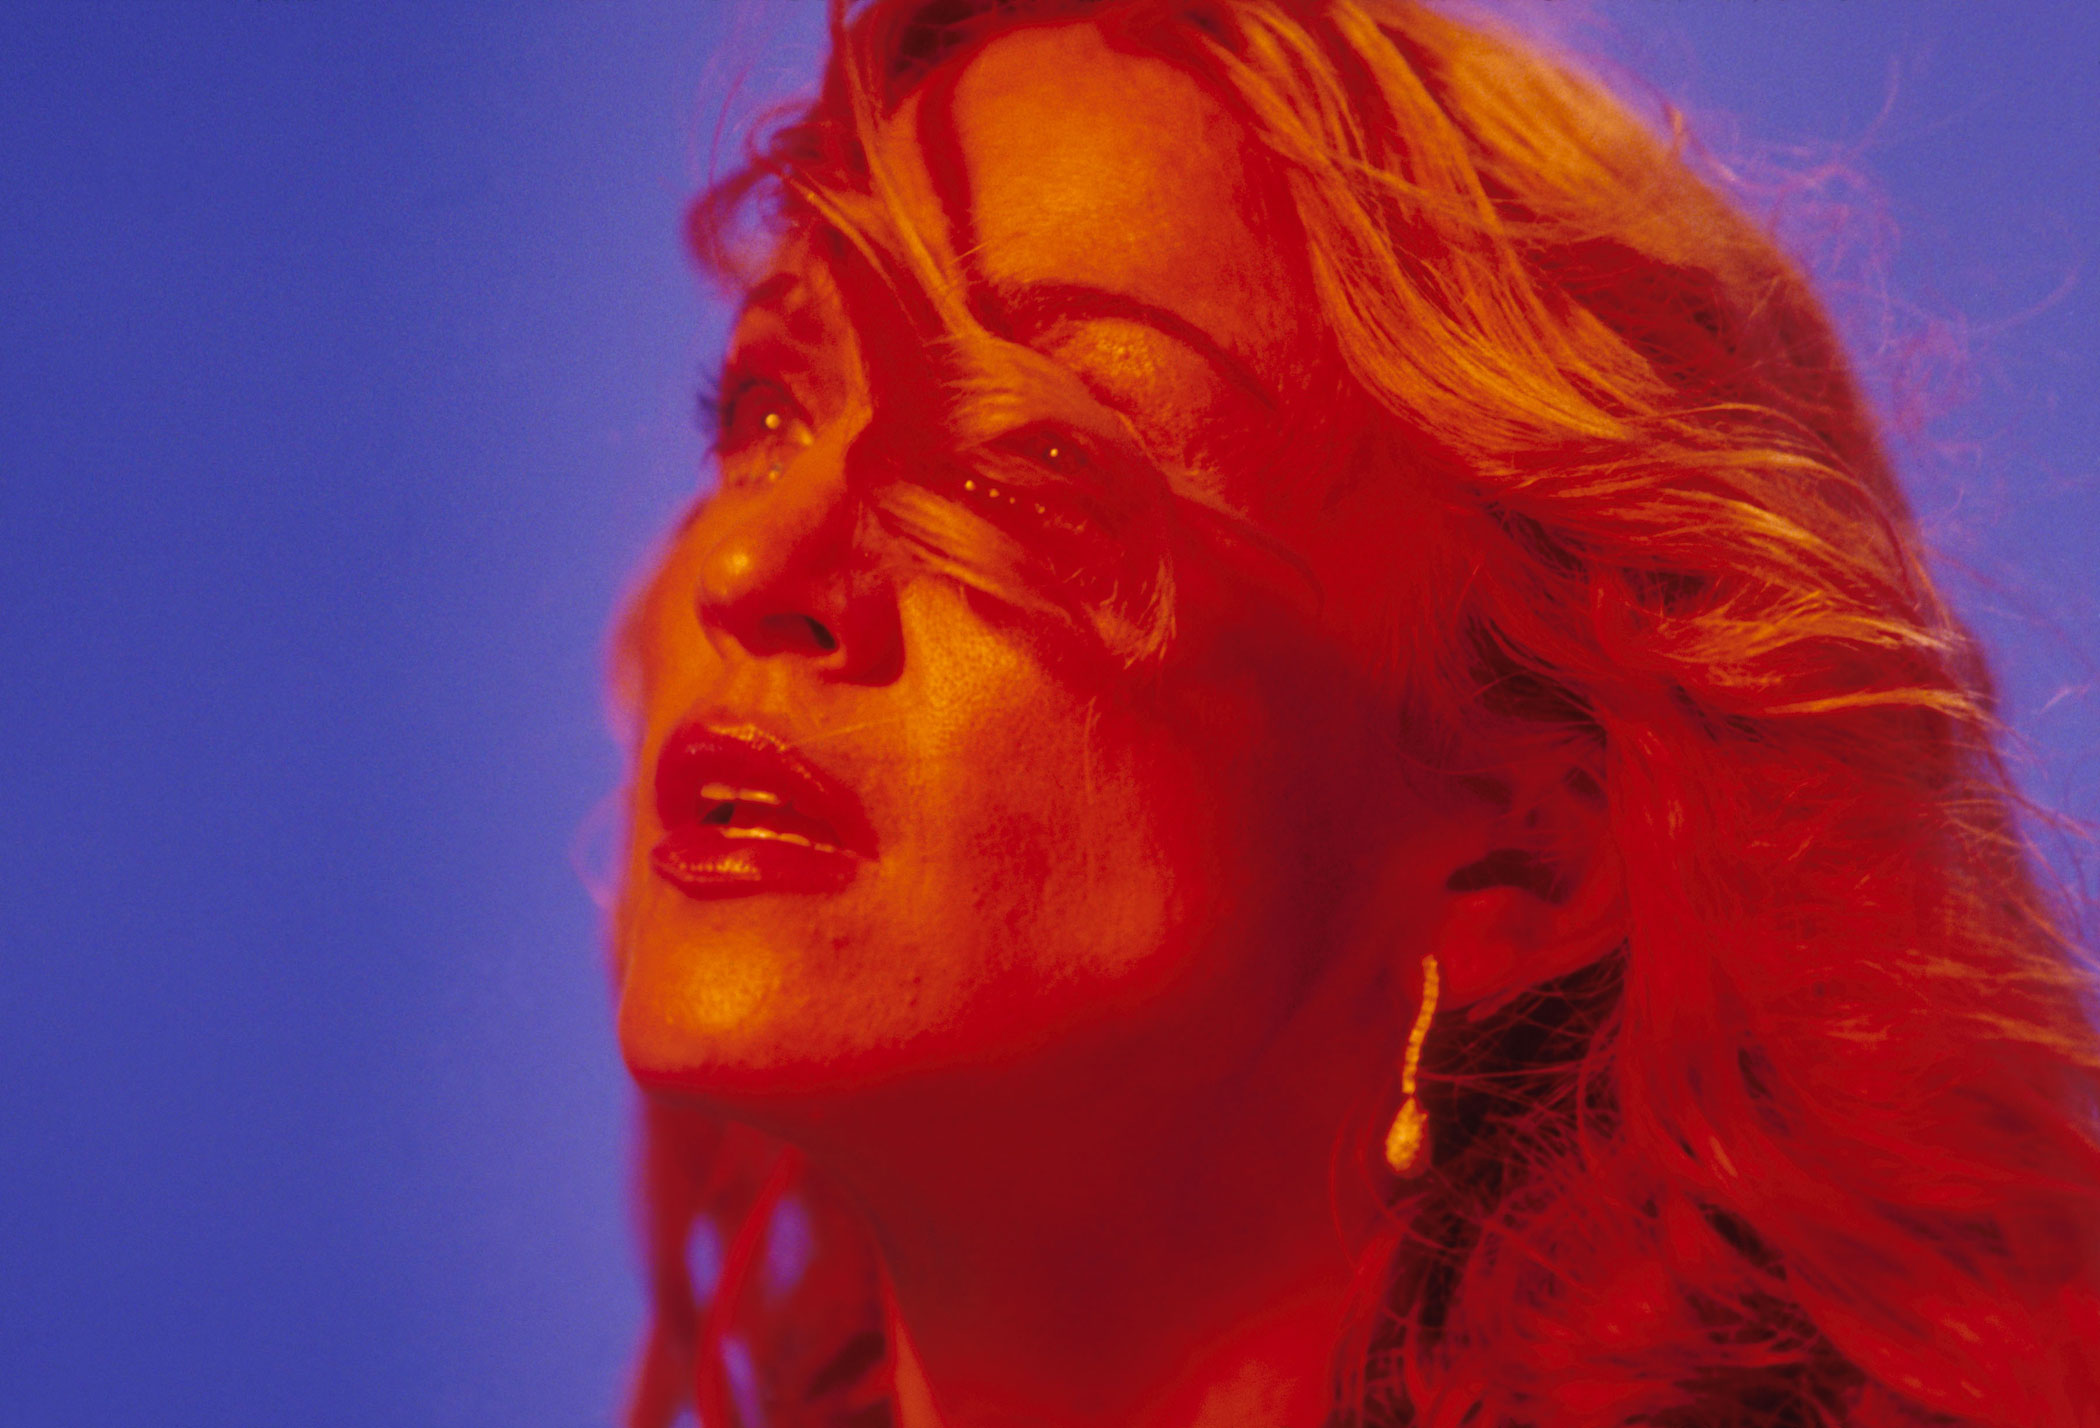 <b>Madonna</b> sang the theme song for <i>Die Another Day</i>.